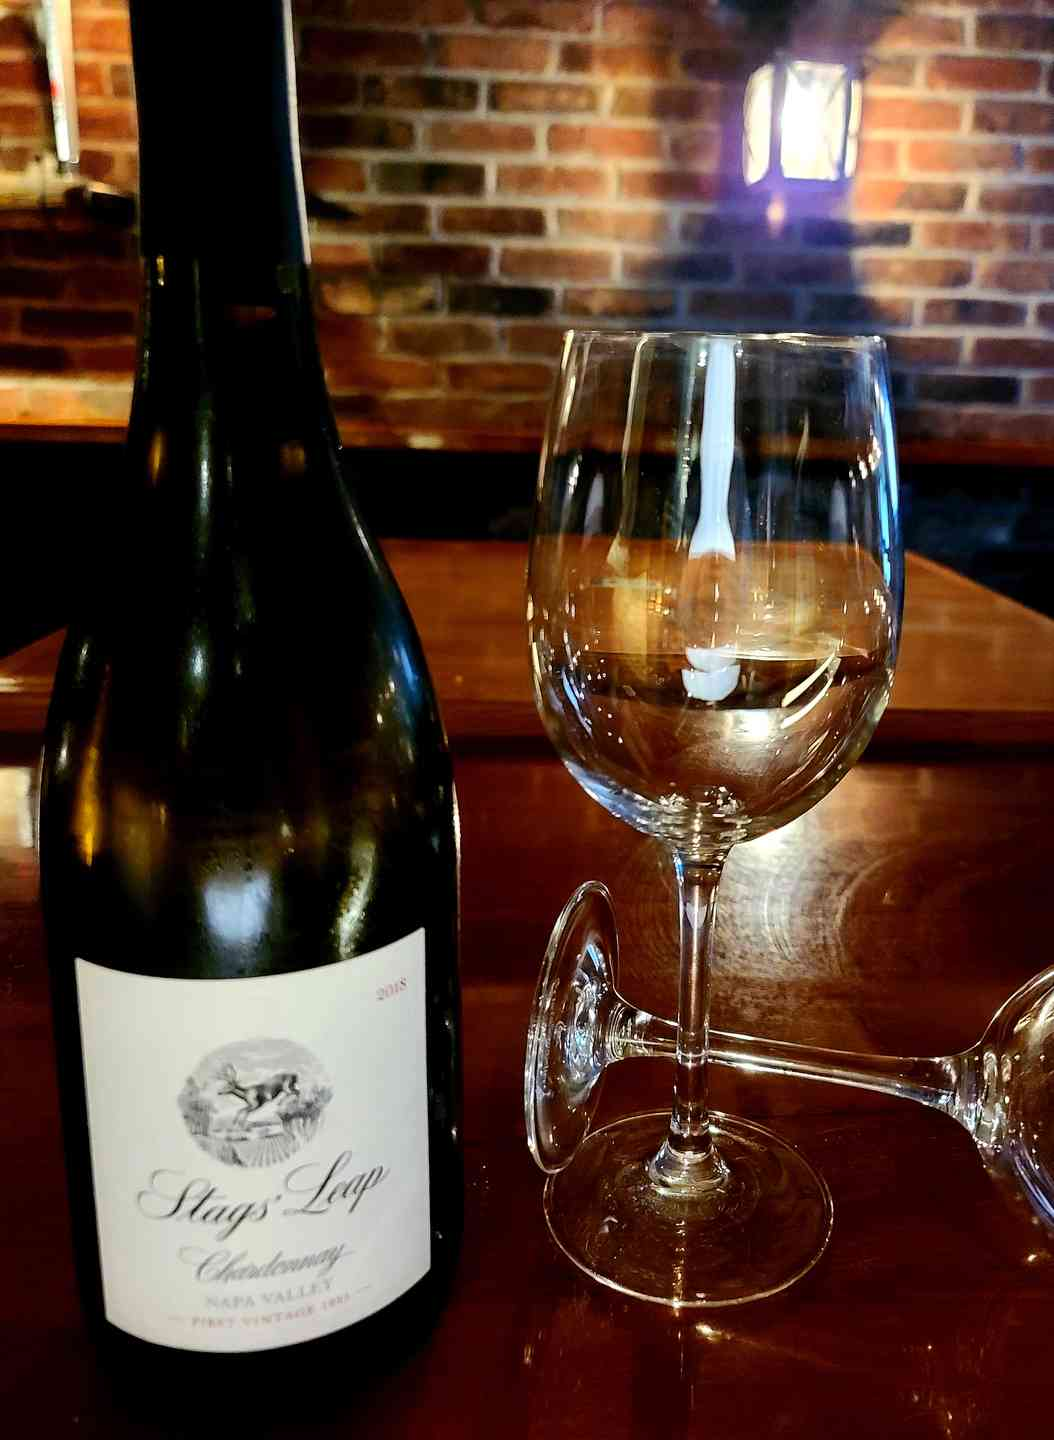 Chardonnay, Stags Leap